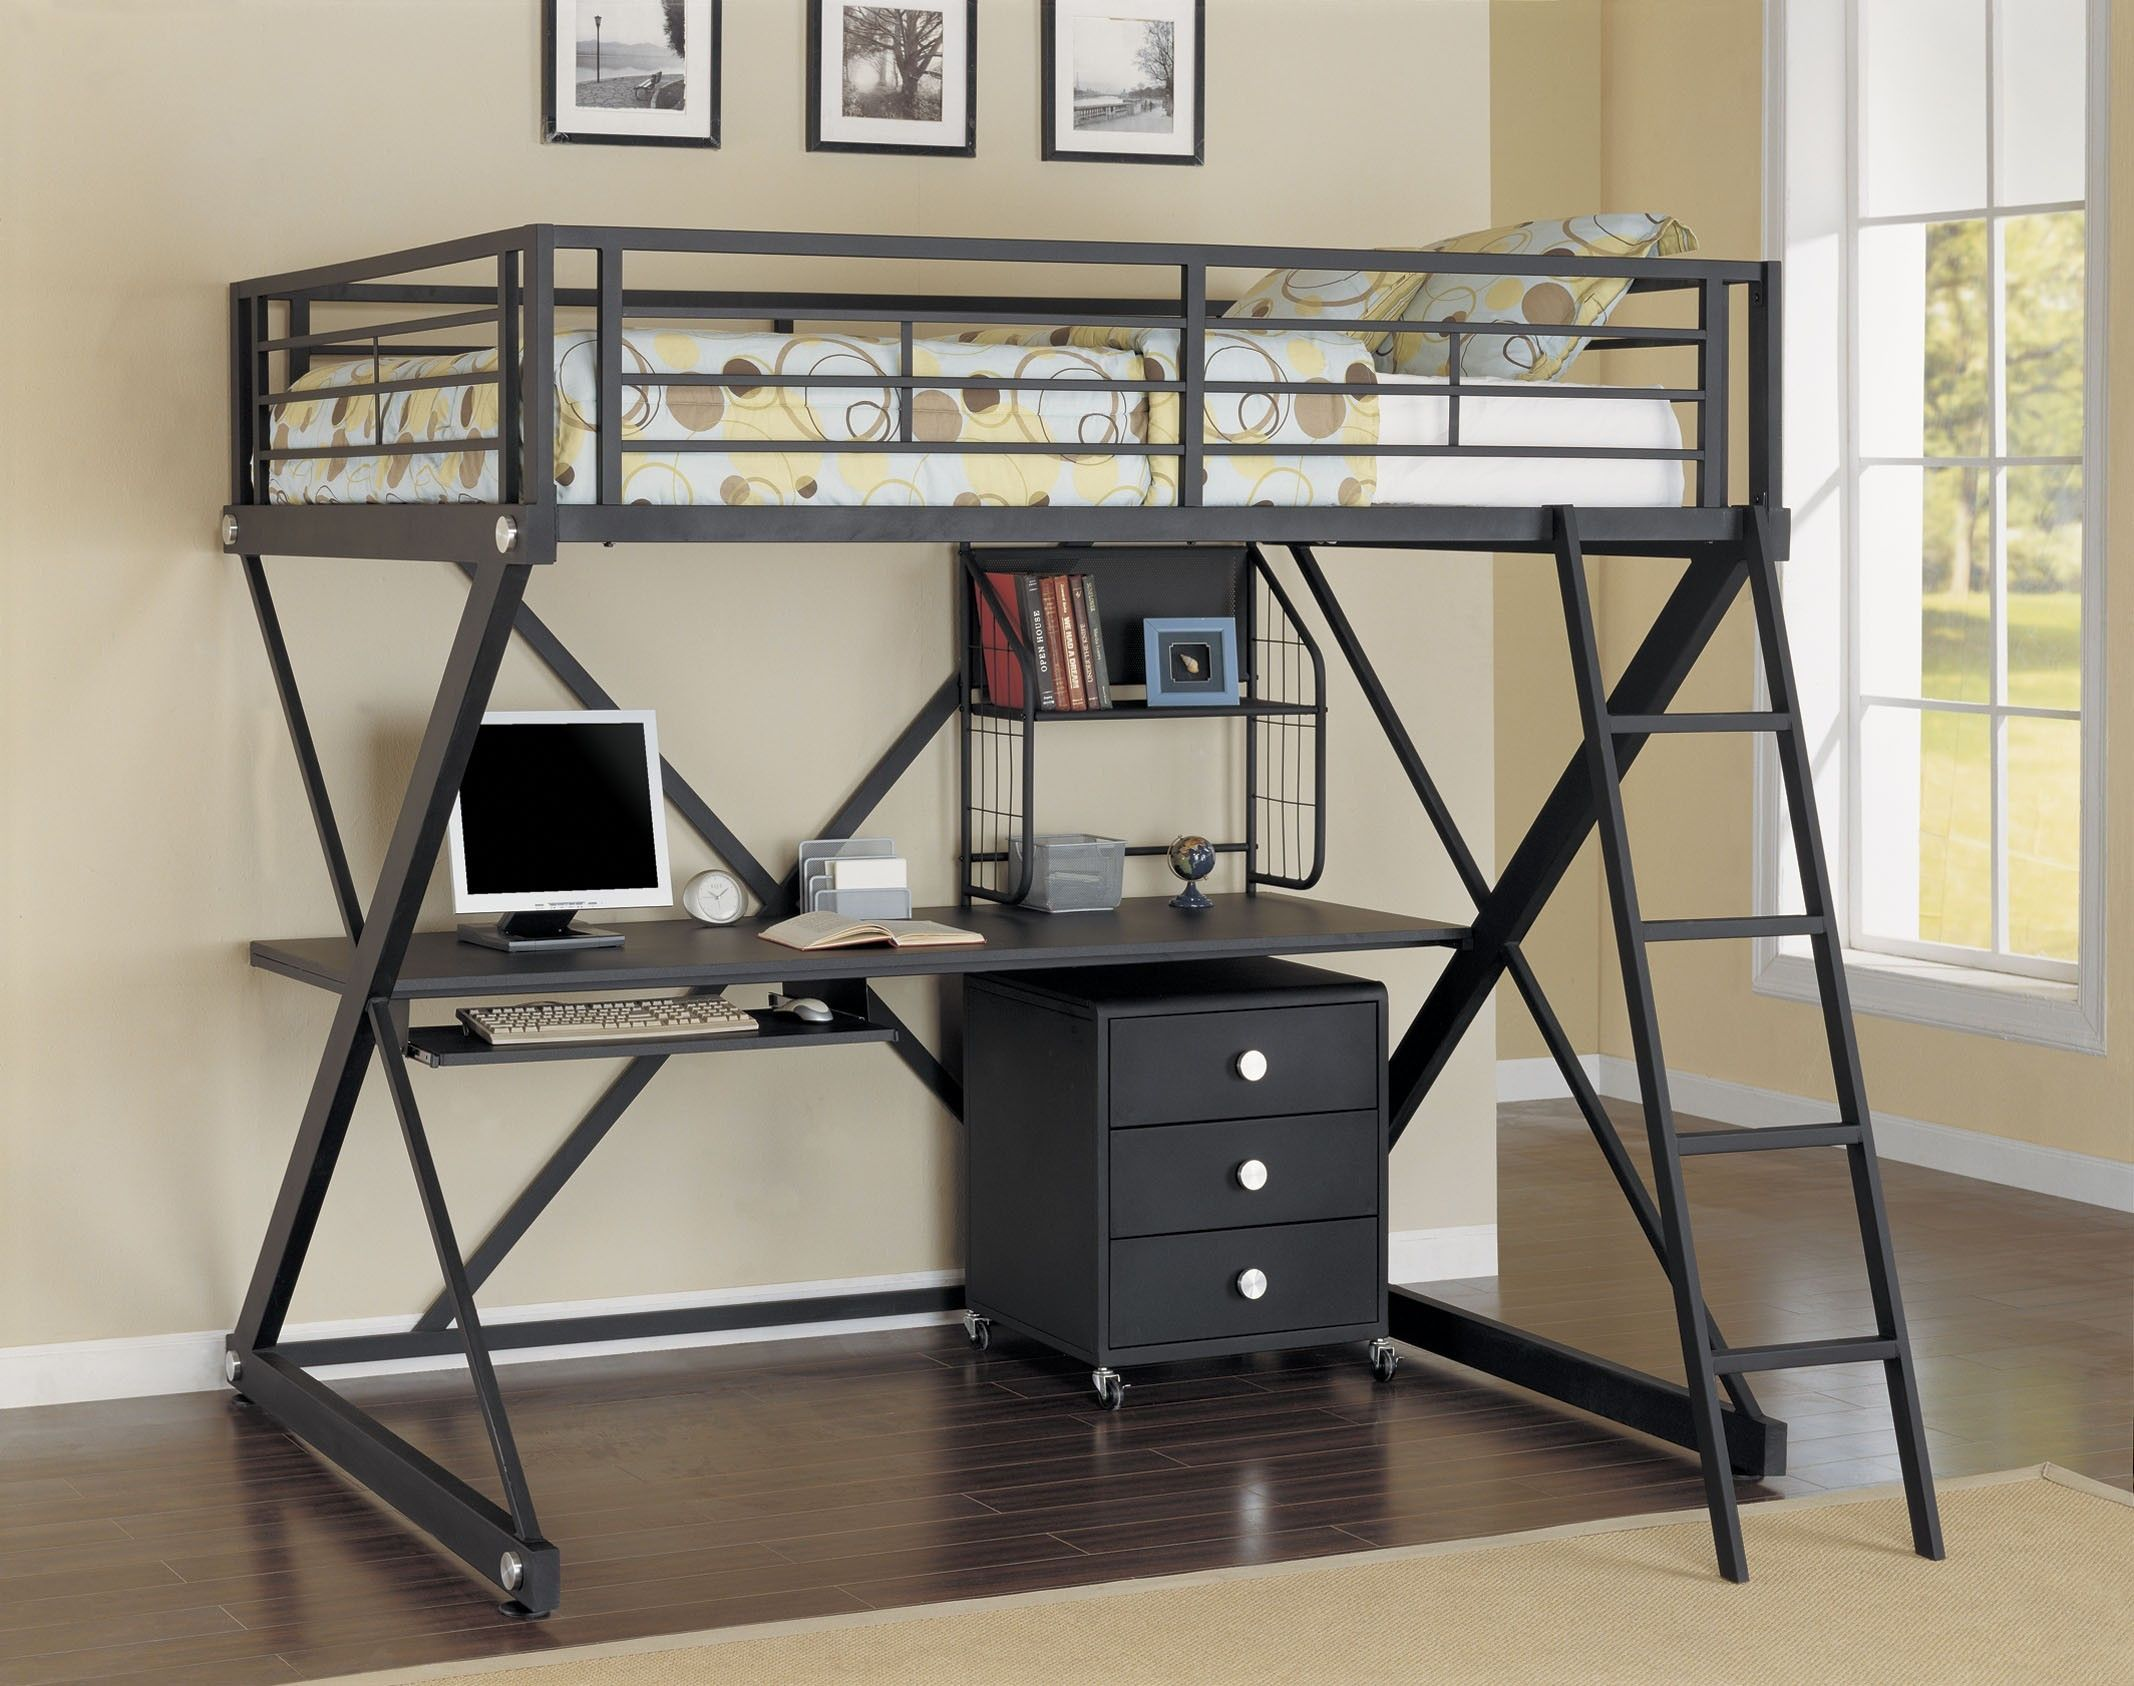 Truly Extraordinary Sleep, Study, And Storage. A Complete Youth Bedroom In  The Space Of A Full Size Bed. This Versatile Loft Bunk Includes A Full Size  Upper ...